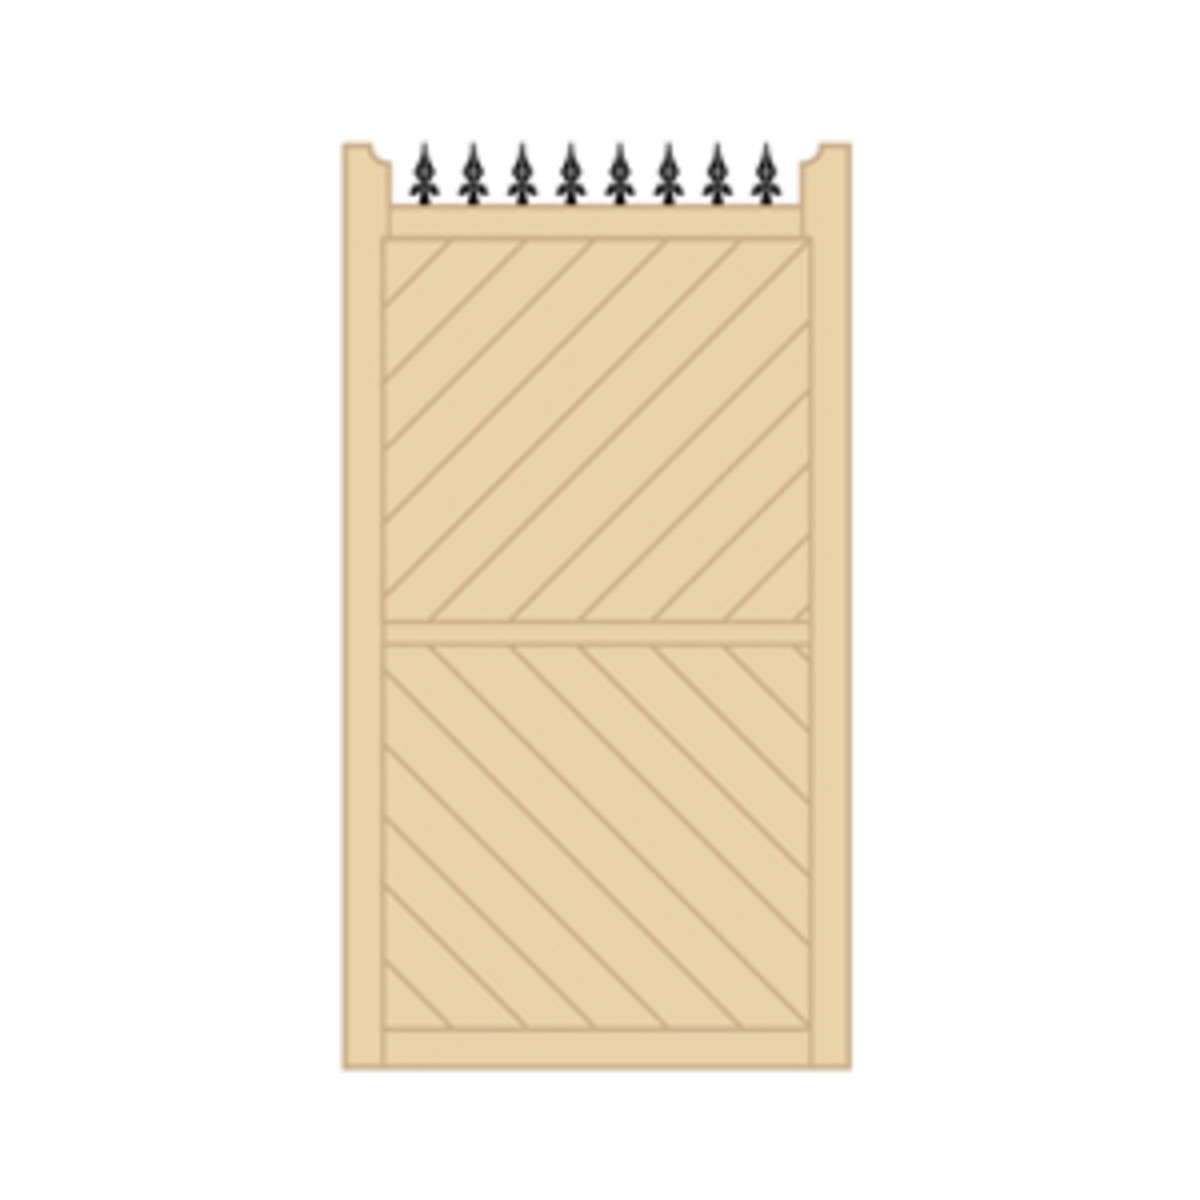 Wooden gates - Tall single side entrance wooden gates - Parquetry side gate